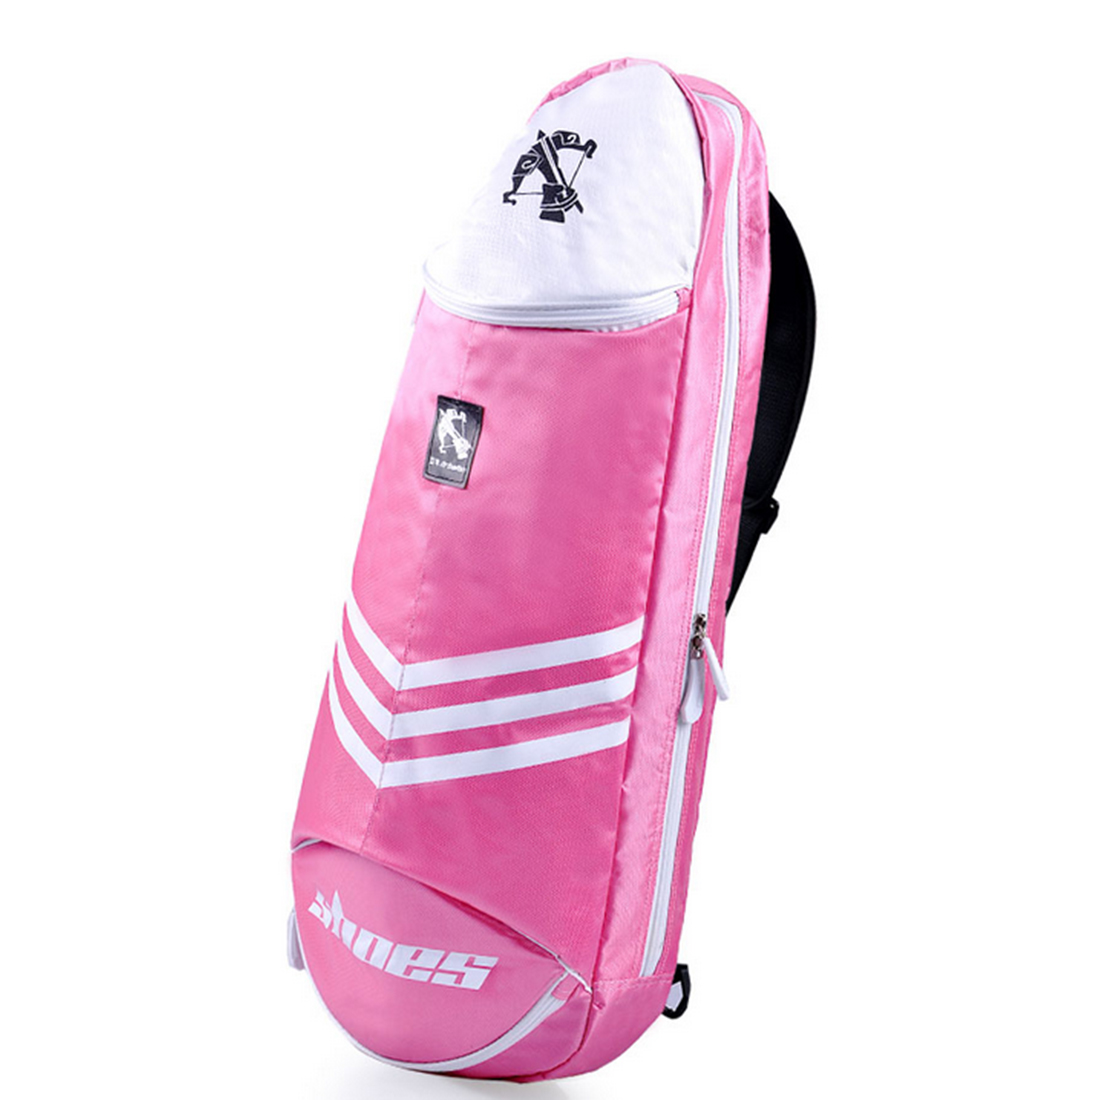 67b7afd51c97 Buy bags for tennis racket and get free shipping on AliExpress.com